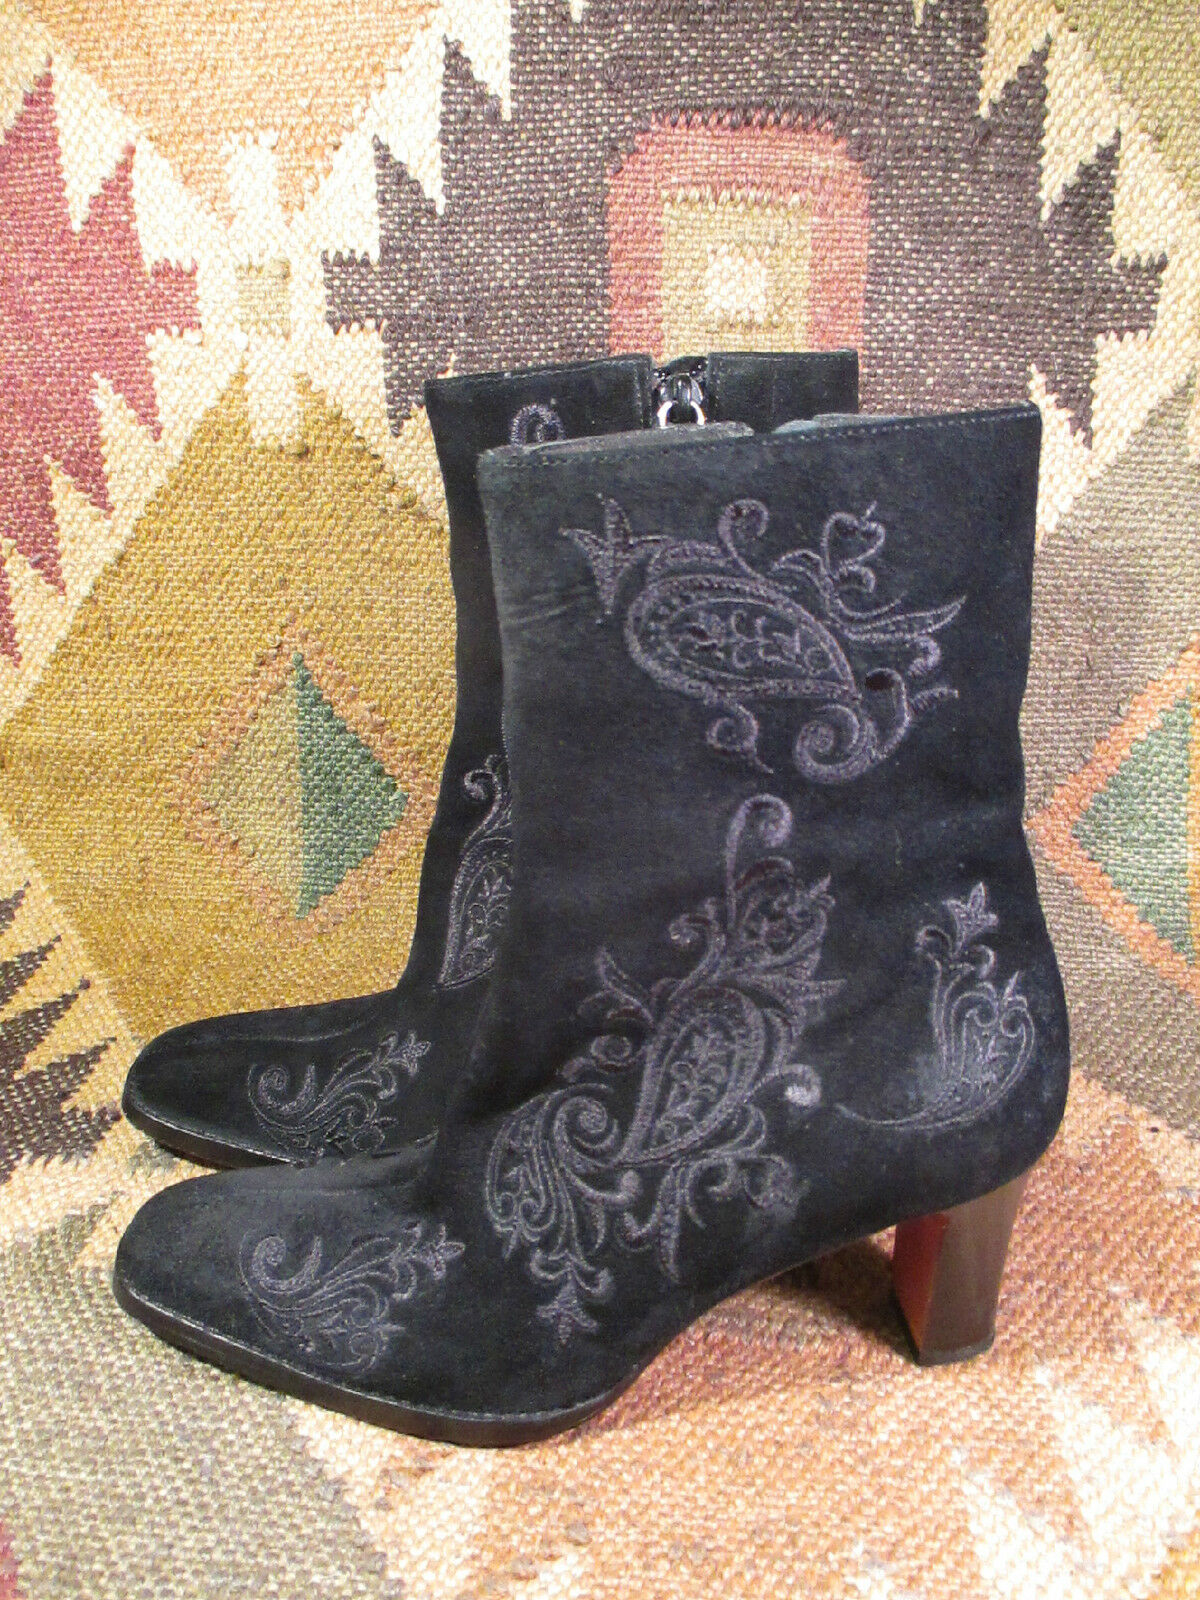 RALPH LAUREN CORINA EMBROIDERY BLACK SUEDE ANKLE BOOTS BOOTS BOOTS  size 5B made in BRAZIL 78ac7a